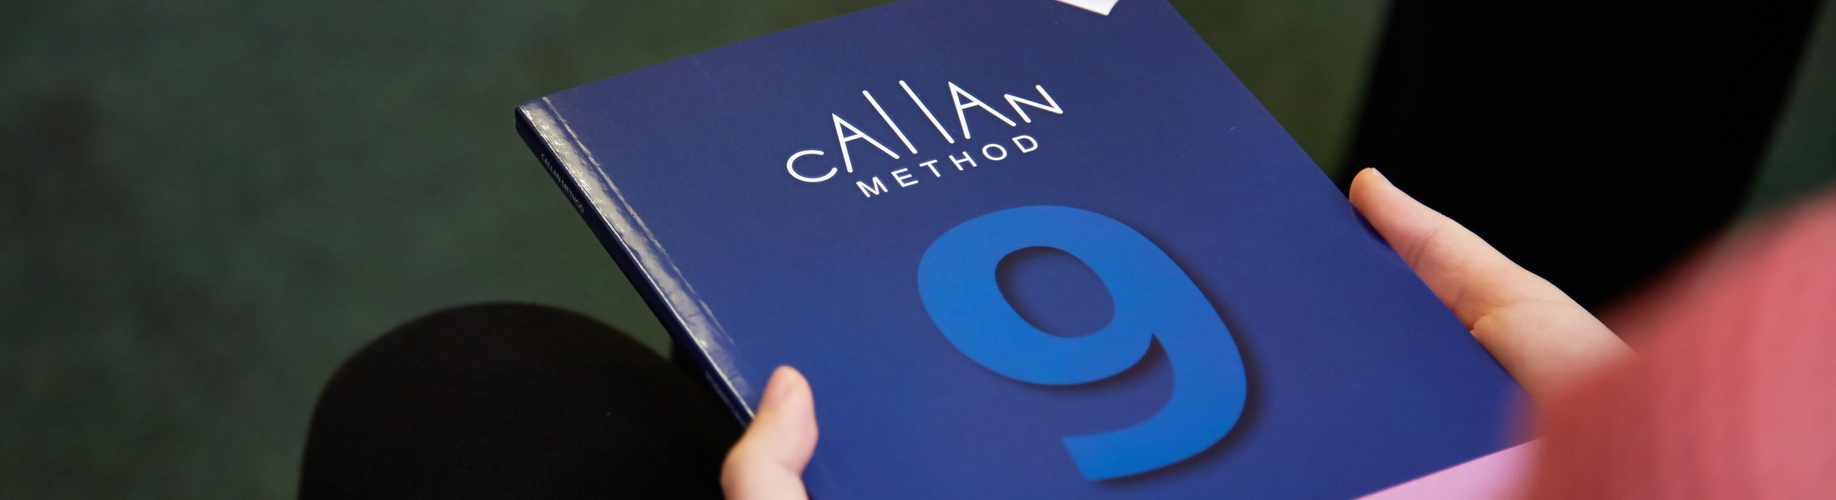 Our books callan method organisation our books the callan method offers fandeluxe Gallery